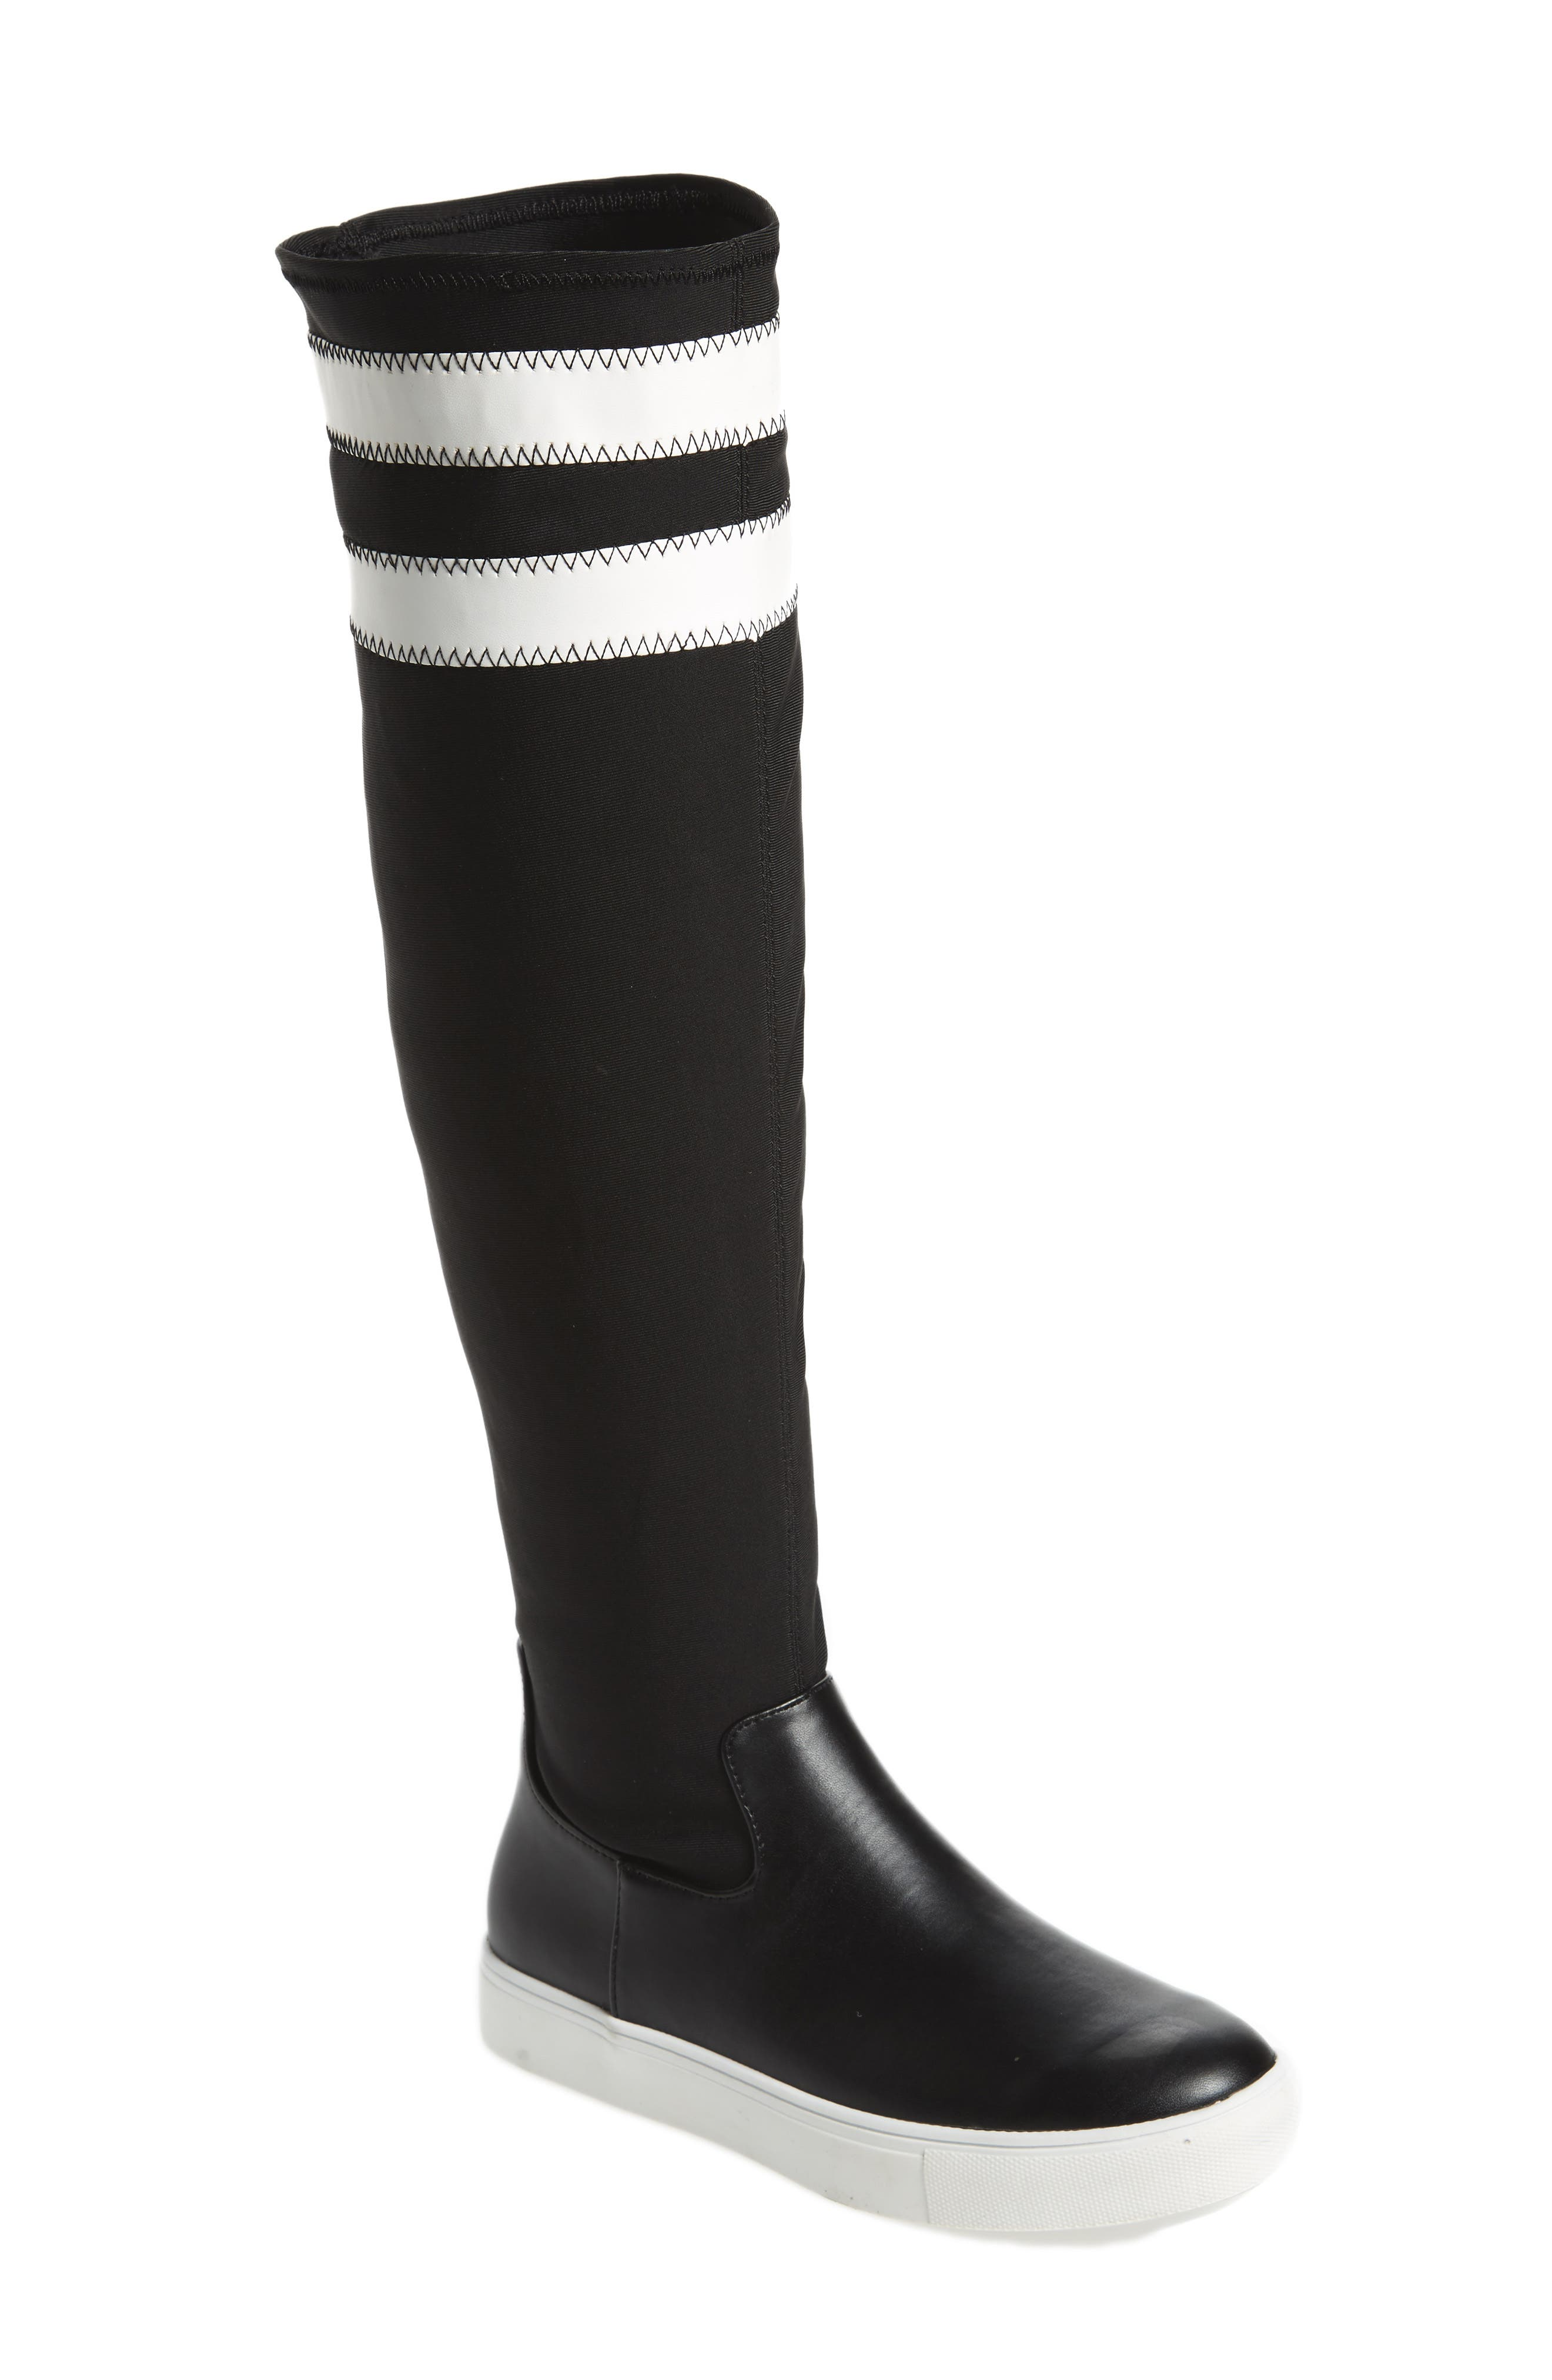 Melody Over the Knee Boot,                             Main thumbnail 1, color,                             004